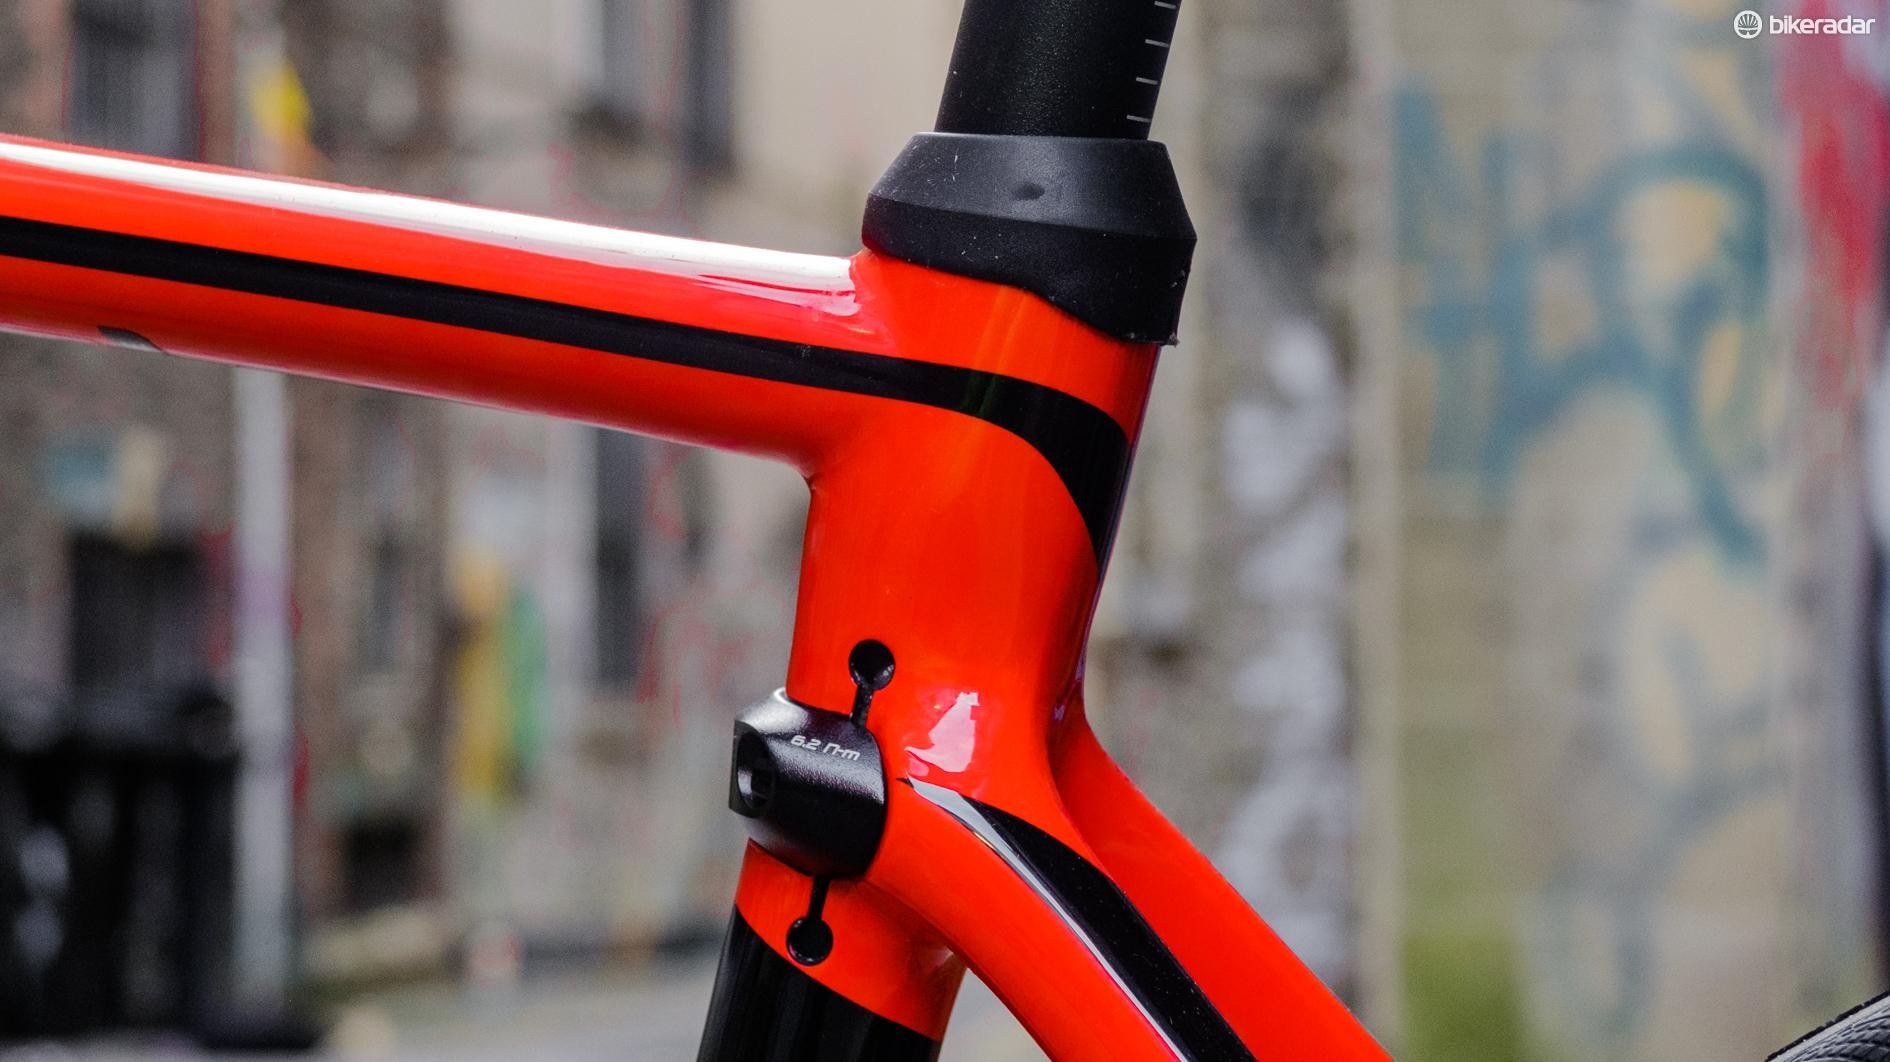 The seatstays are radically dropped to improve compliance